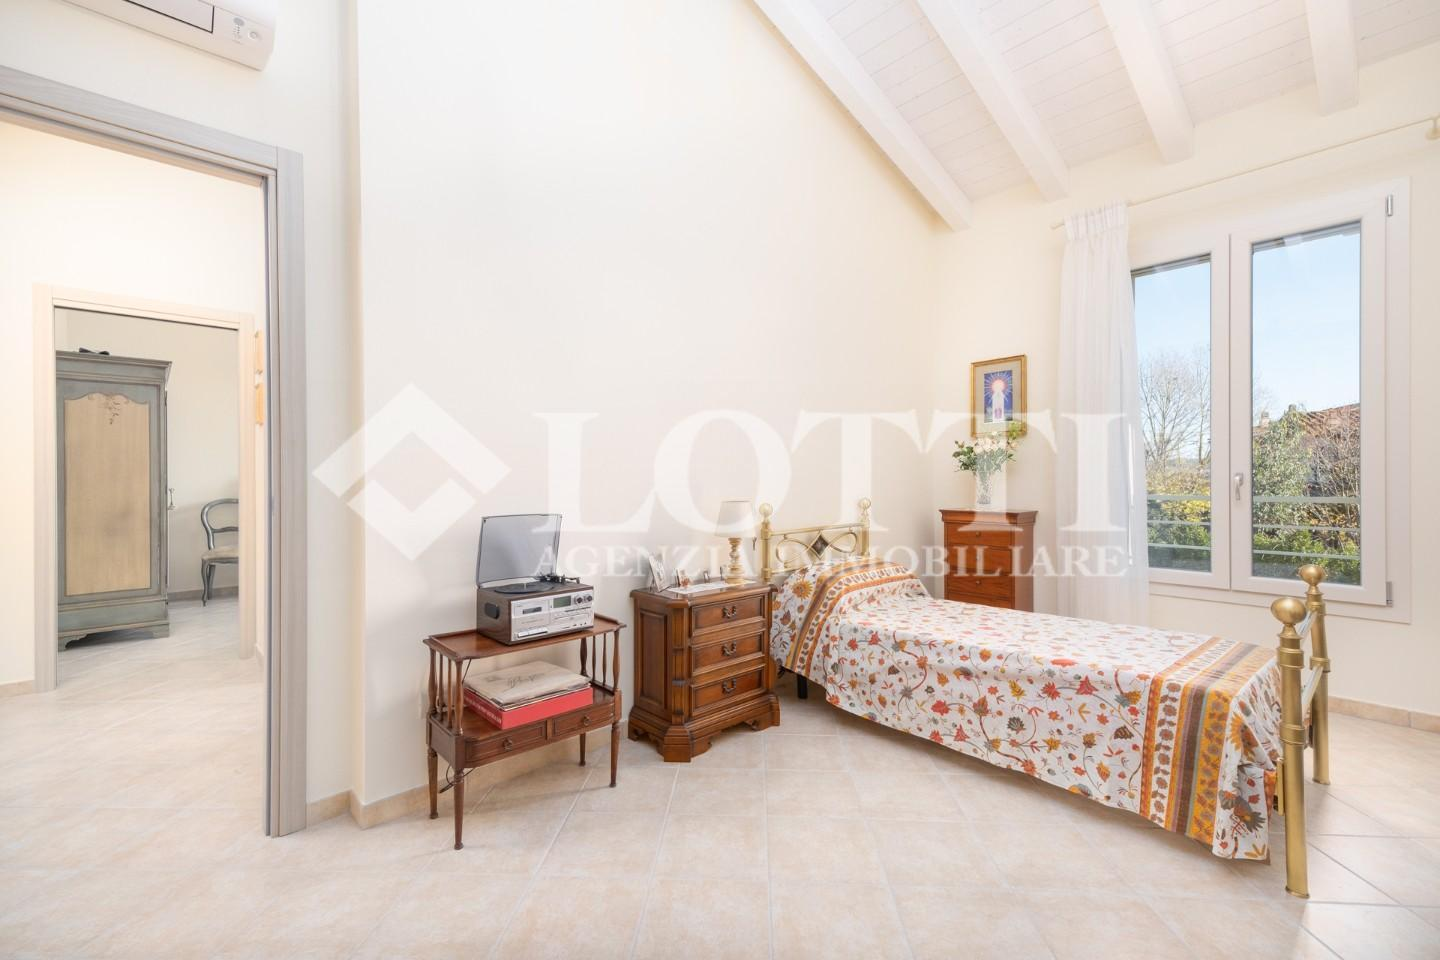 Terraced house for sale, ref. 735